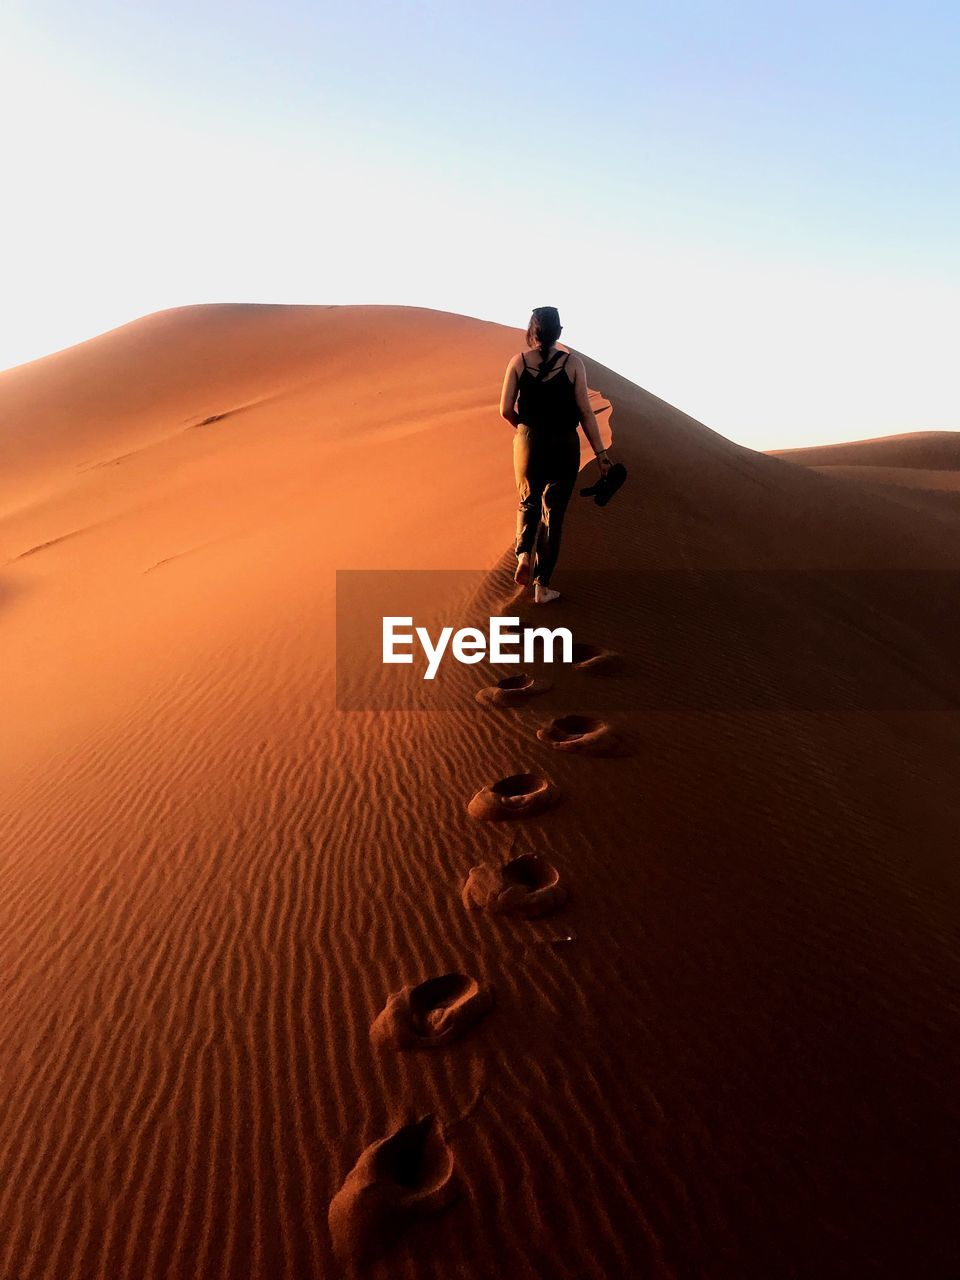 desert, landscape, land, sand dune, sand, one person, arid climate, climate, scenics - nature, sky, nature, environment, full length, walking, men, remote, beauty in nature, day, tranquil scene, non-urban scene, outdoors